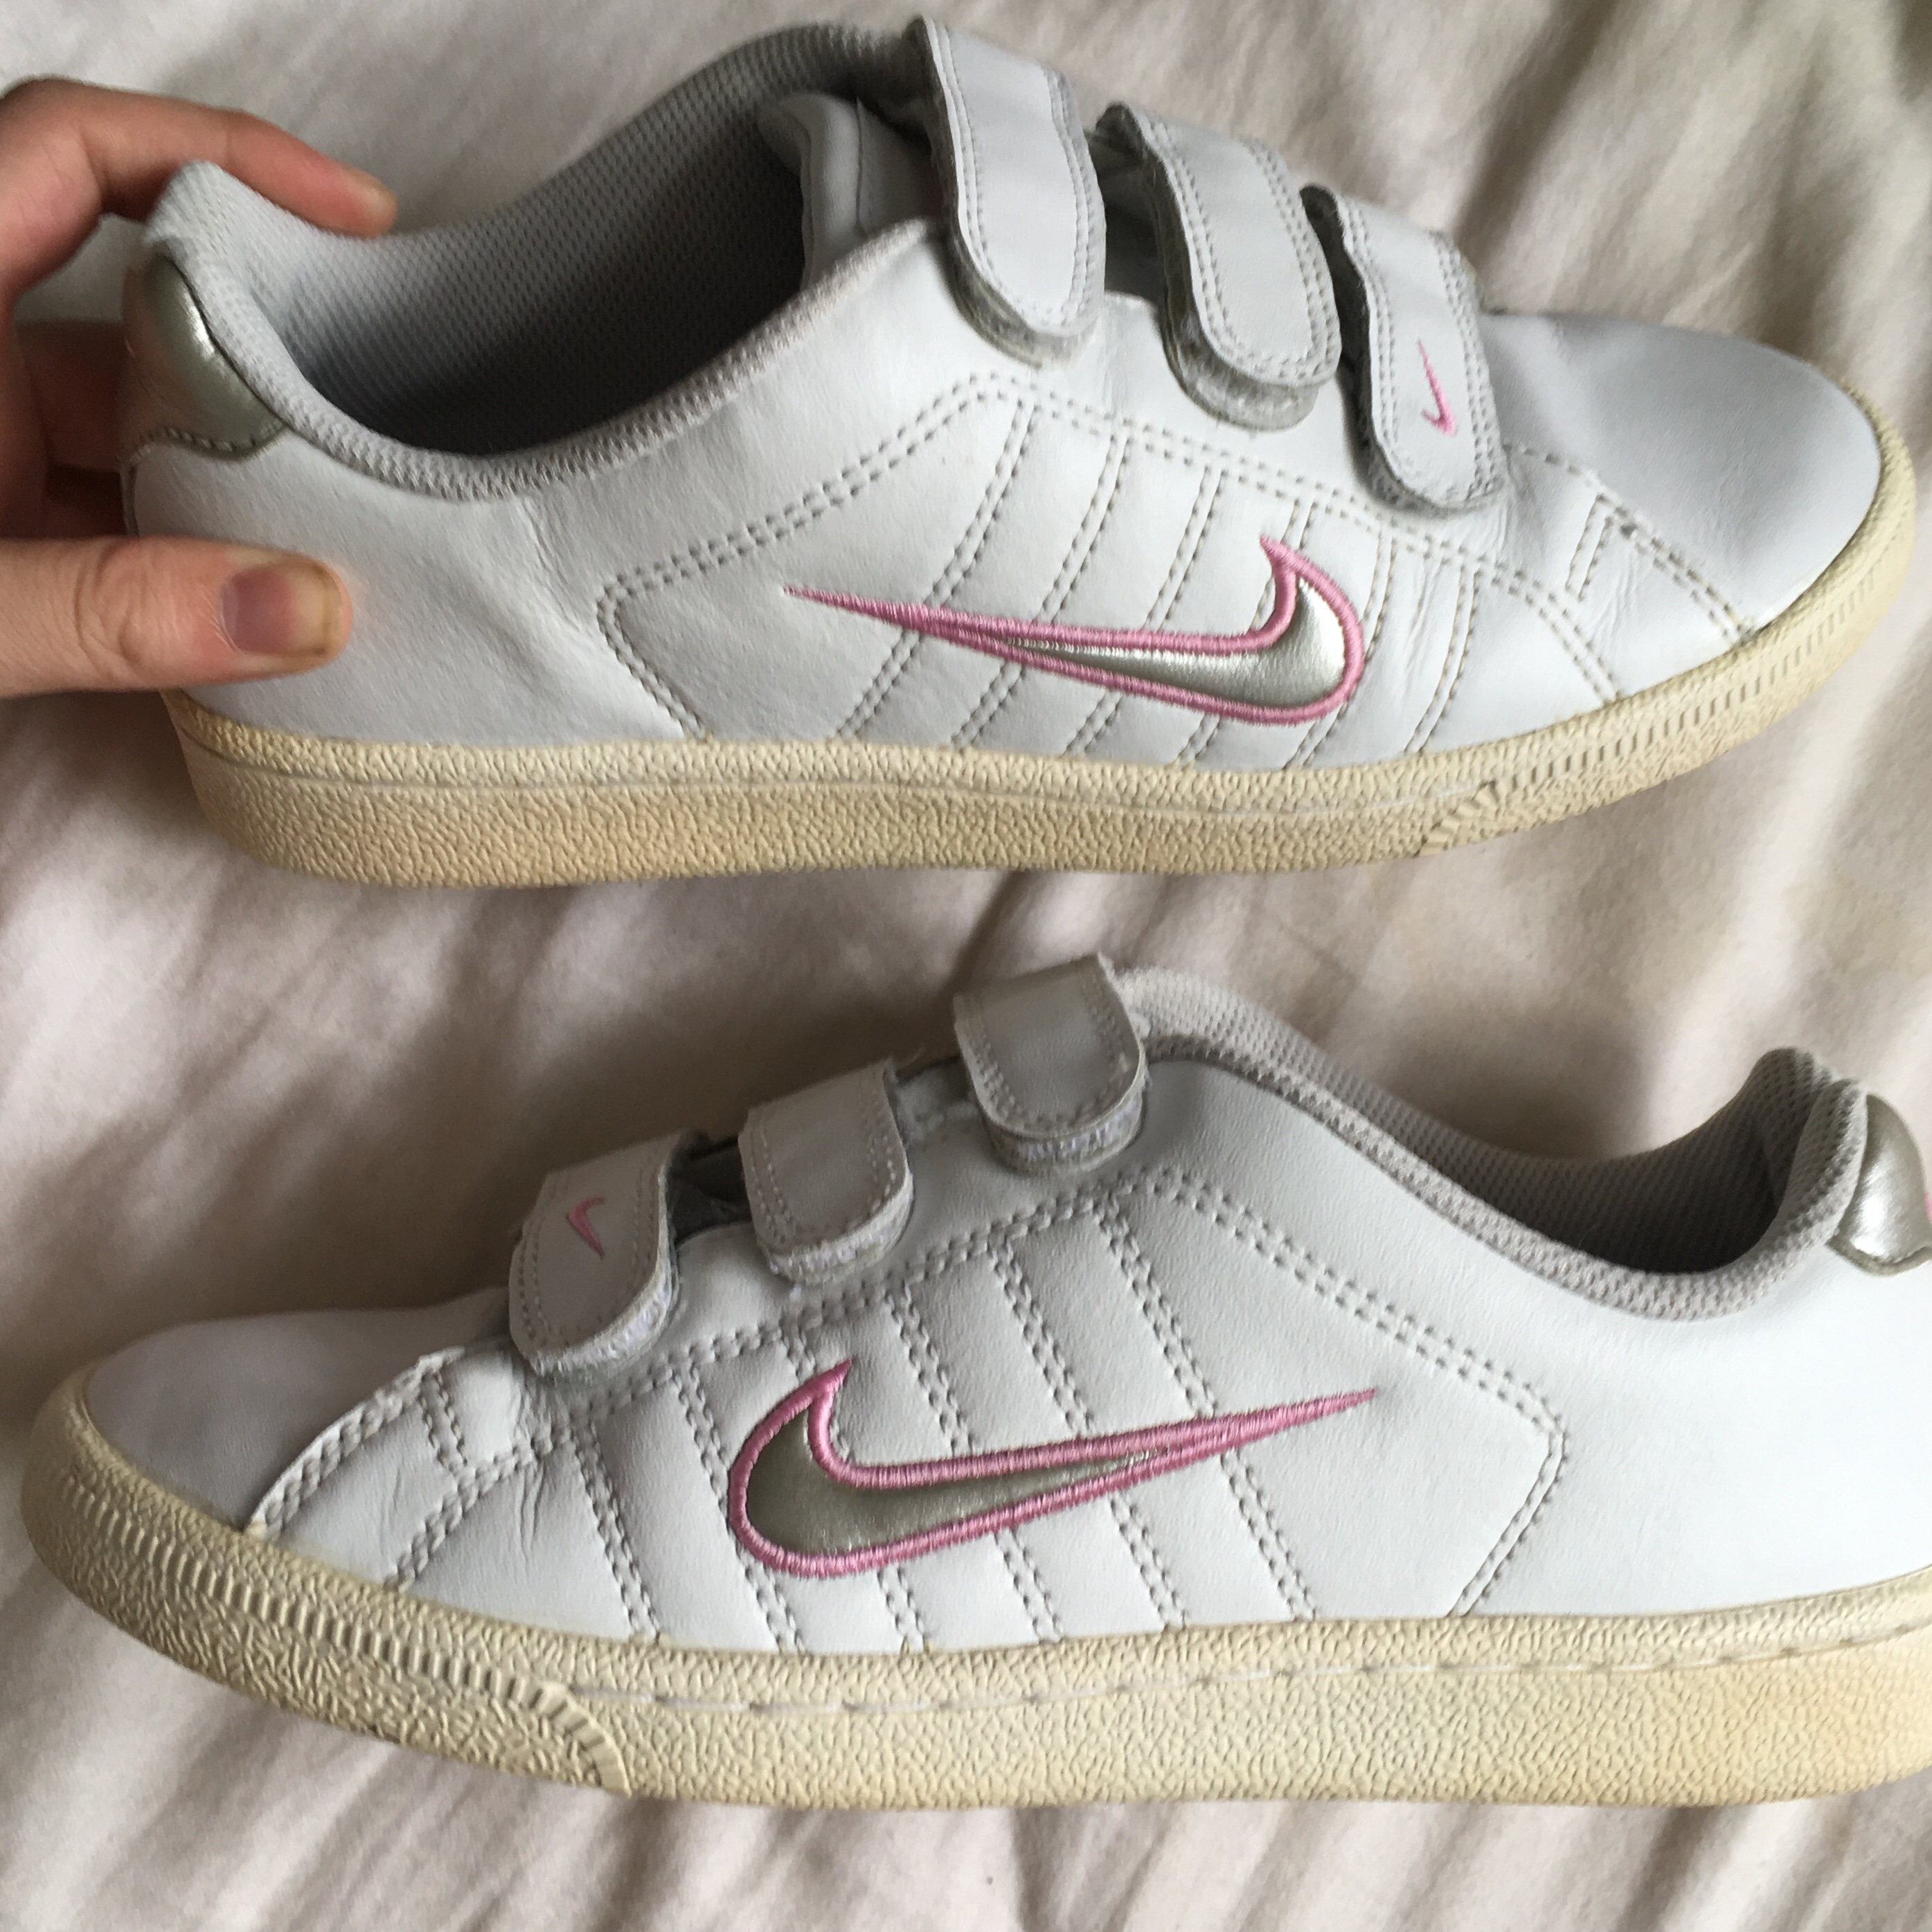 White Nike Trainers with Velcro straps